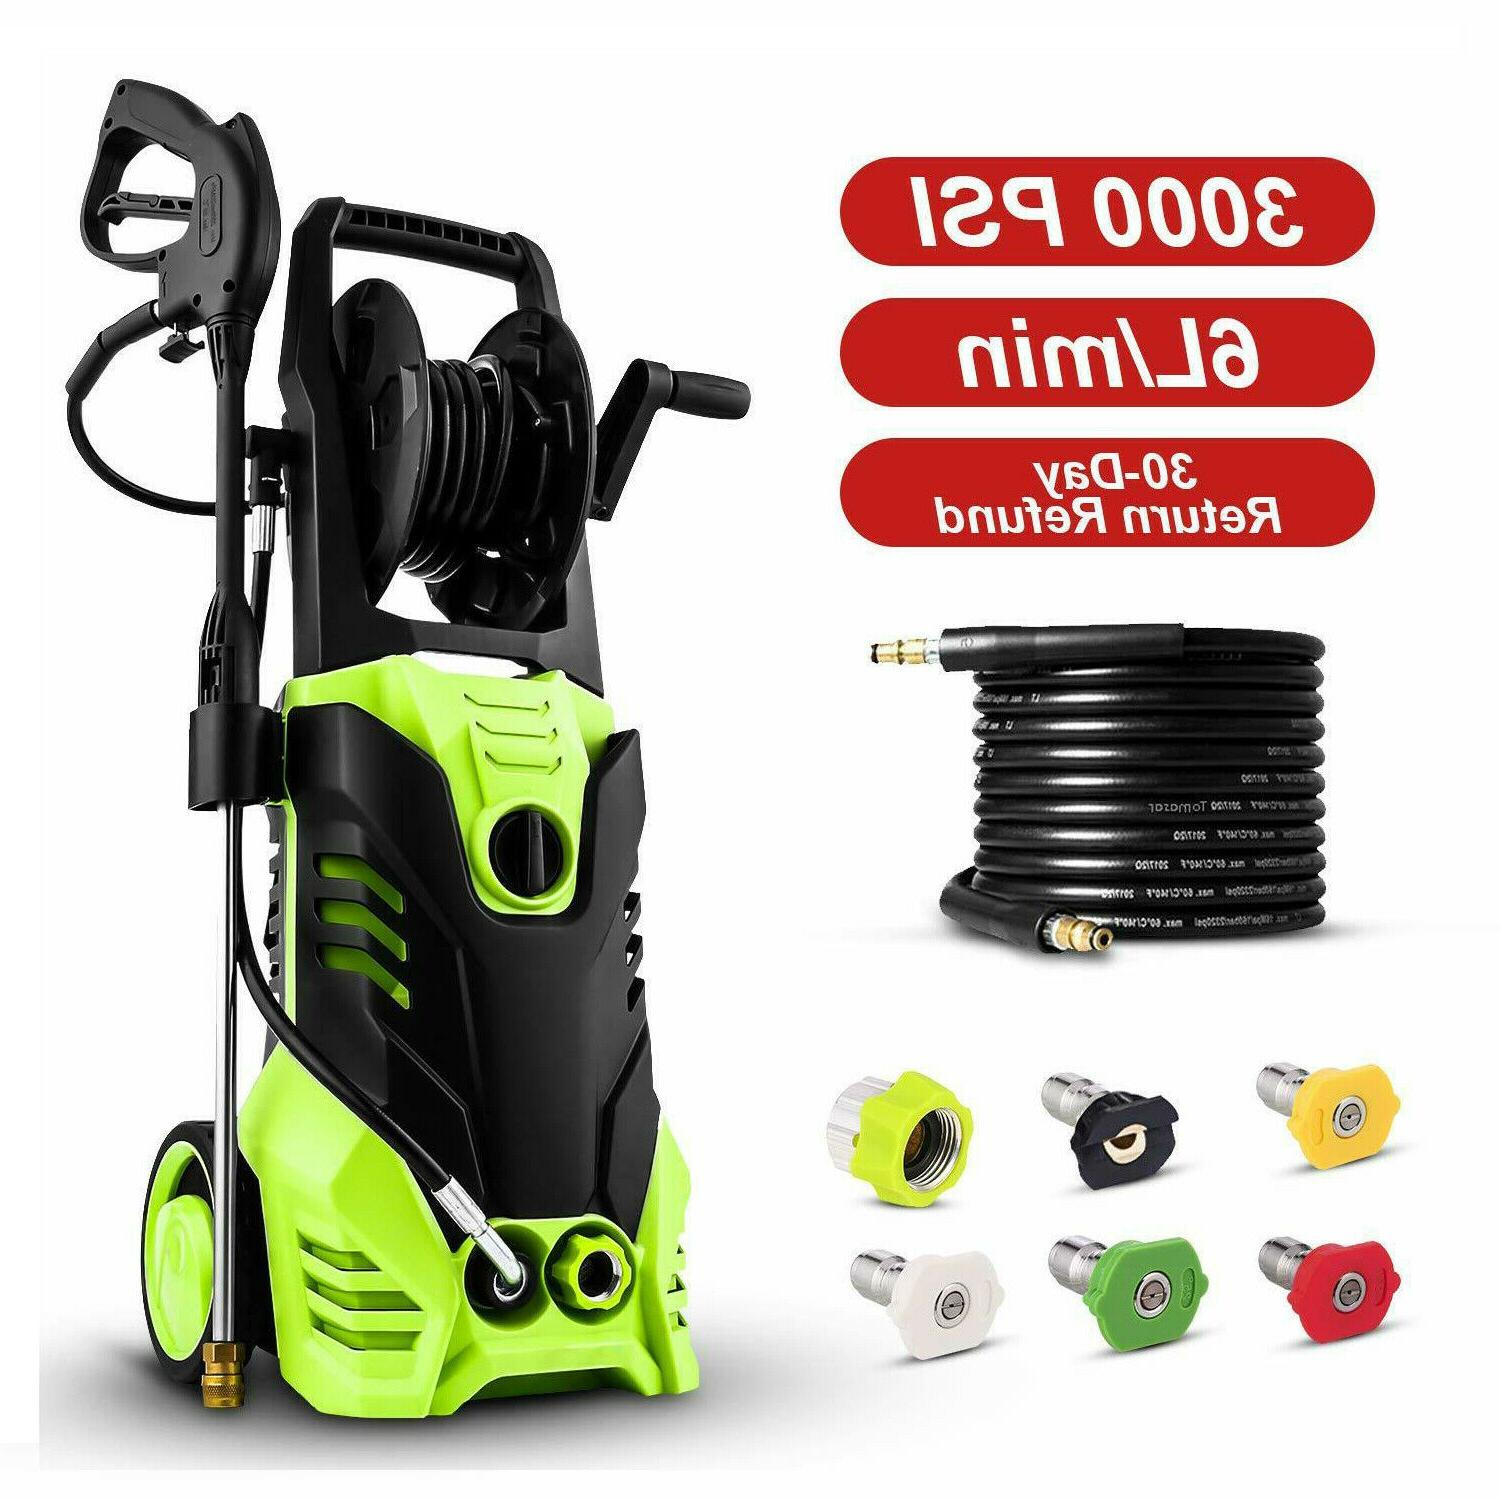 3500PSI 2.6GPM Pressure Washer Powerful Machine